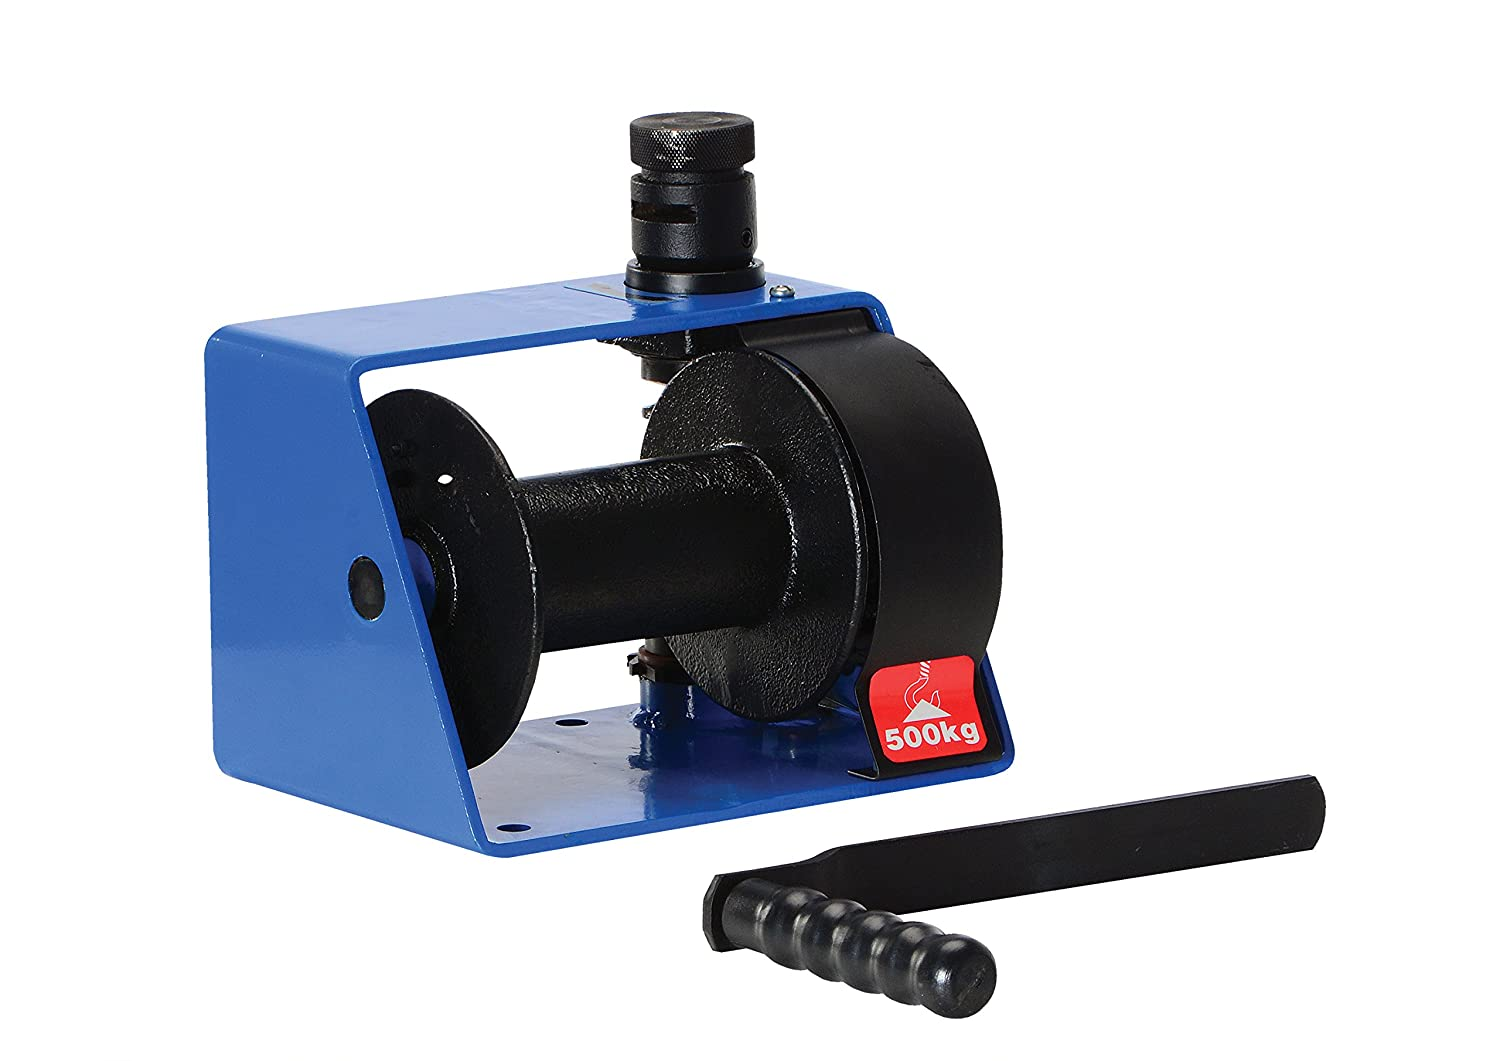 7 Length x 10-1//4 Width x 7 Height 1//4  Wire Rope 7 Length x 10-1//4 Width x 7 Height Vestil Manufacturing 1//4  Wire Rope 1000 lbs Capacity Vestil HWV-1000 Hand Winch with Vertical Handle Worm Gear